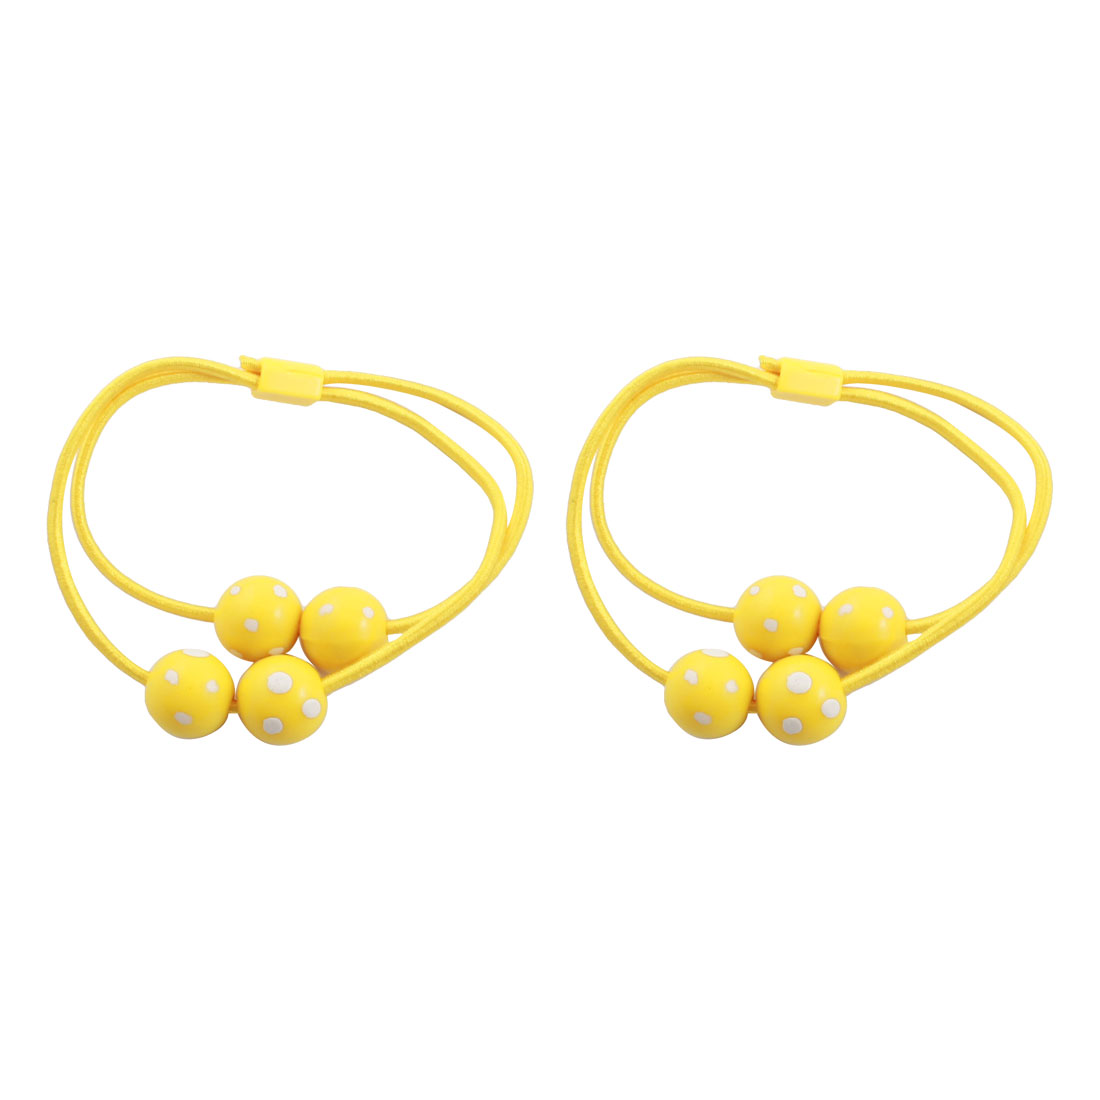 2 Pcs White Dots Print Beads Accent Stretchy Hair Bands Ponytail Holder Yellow